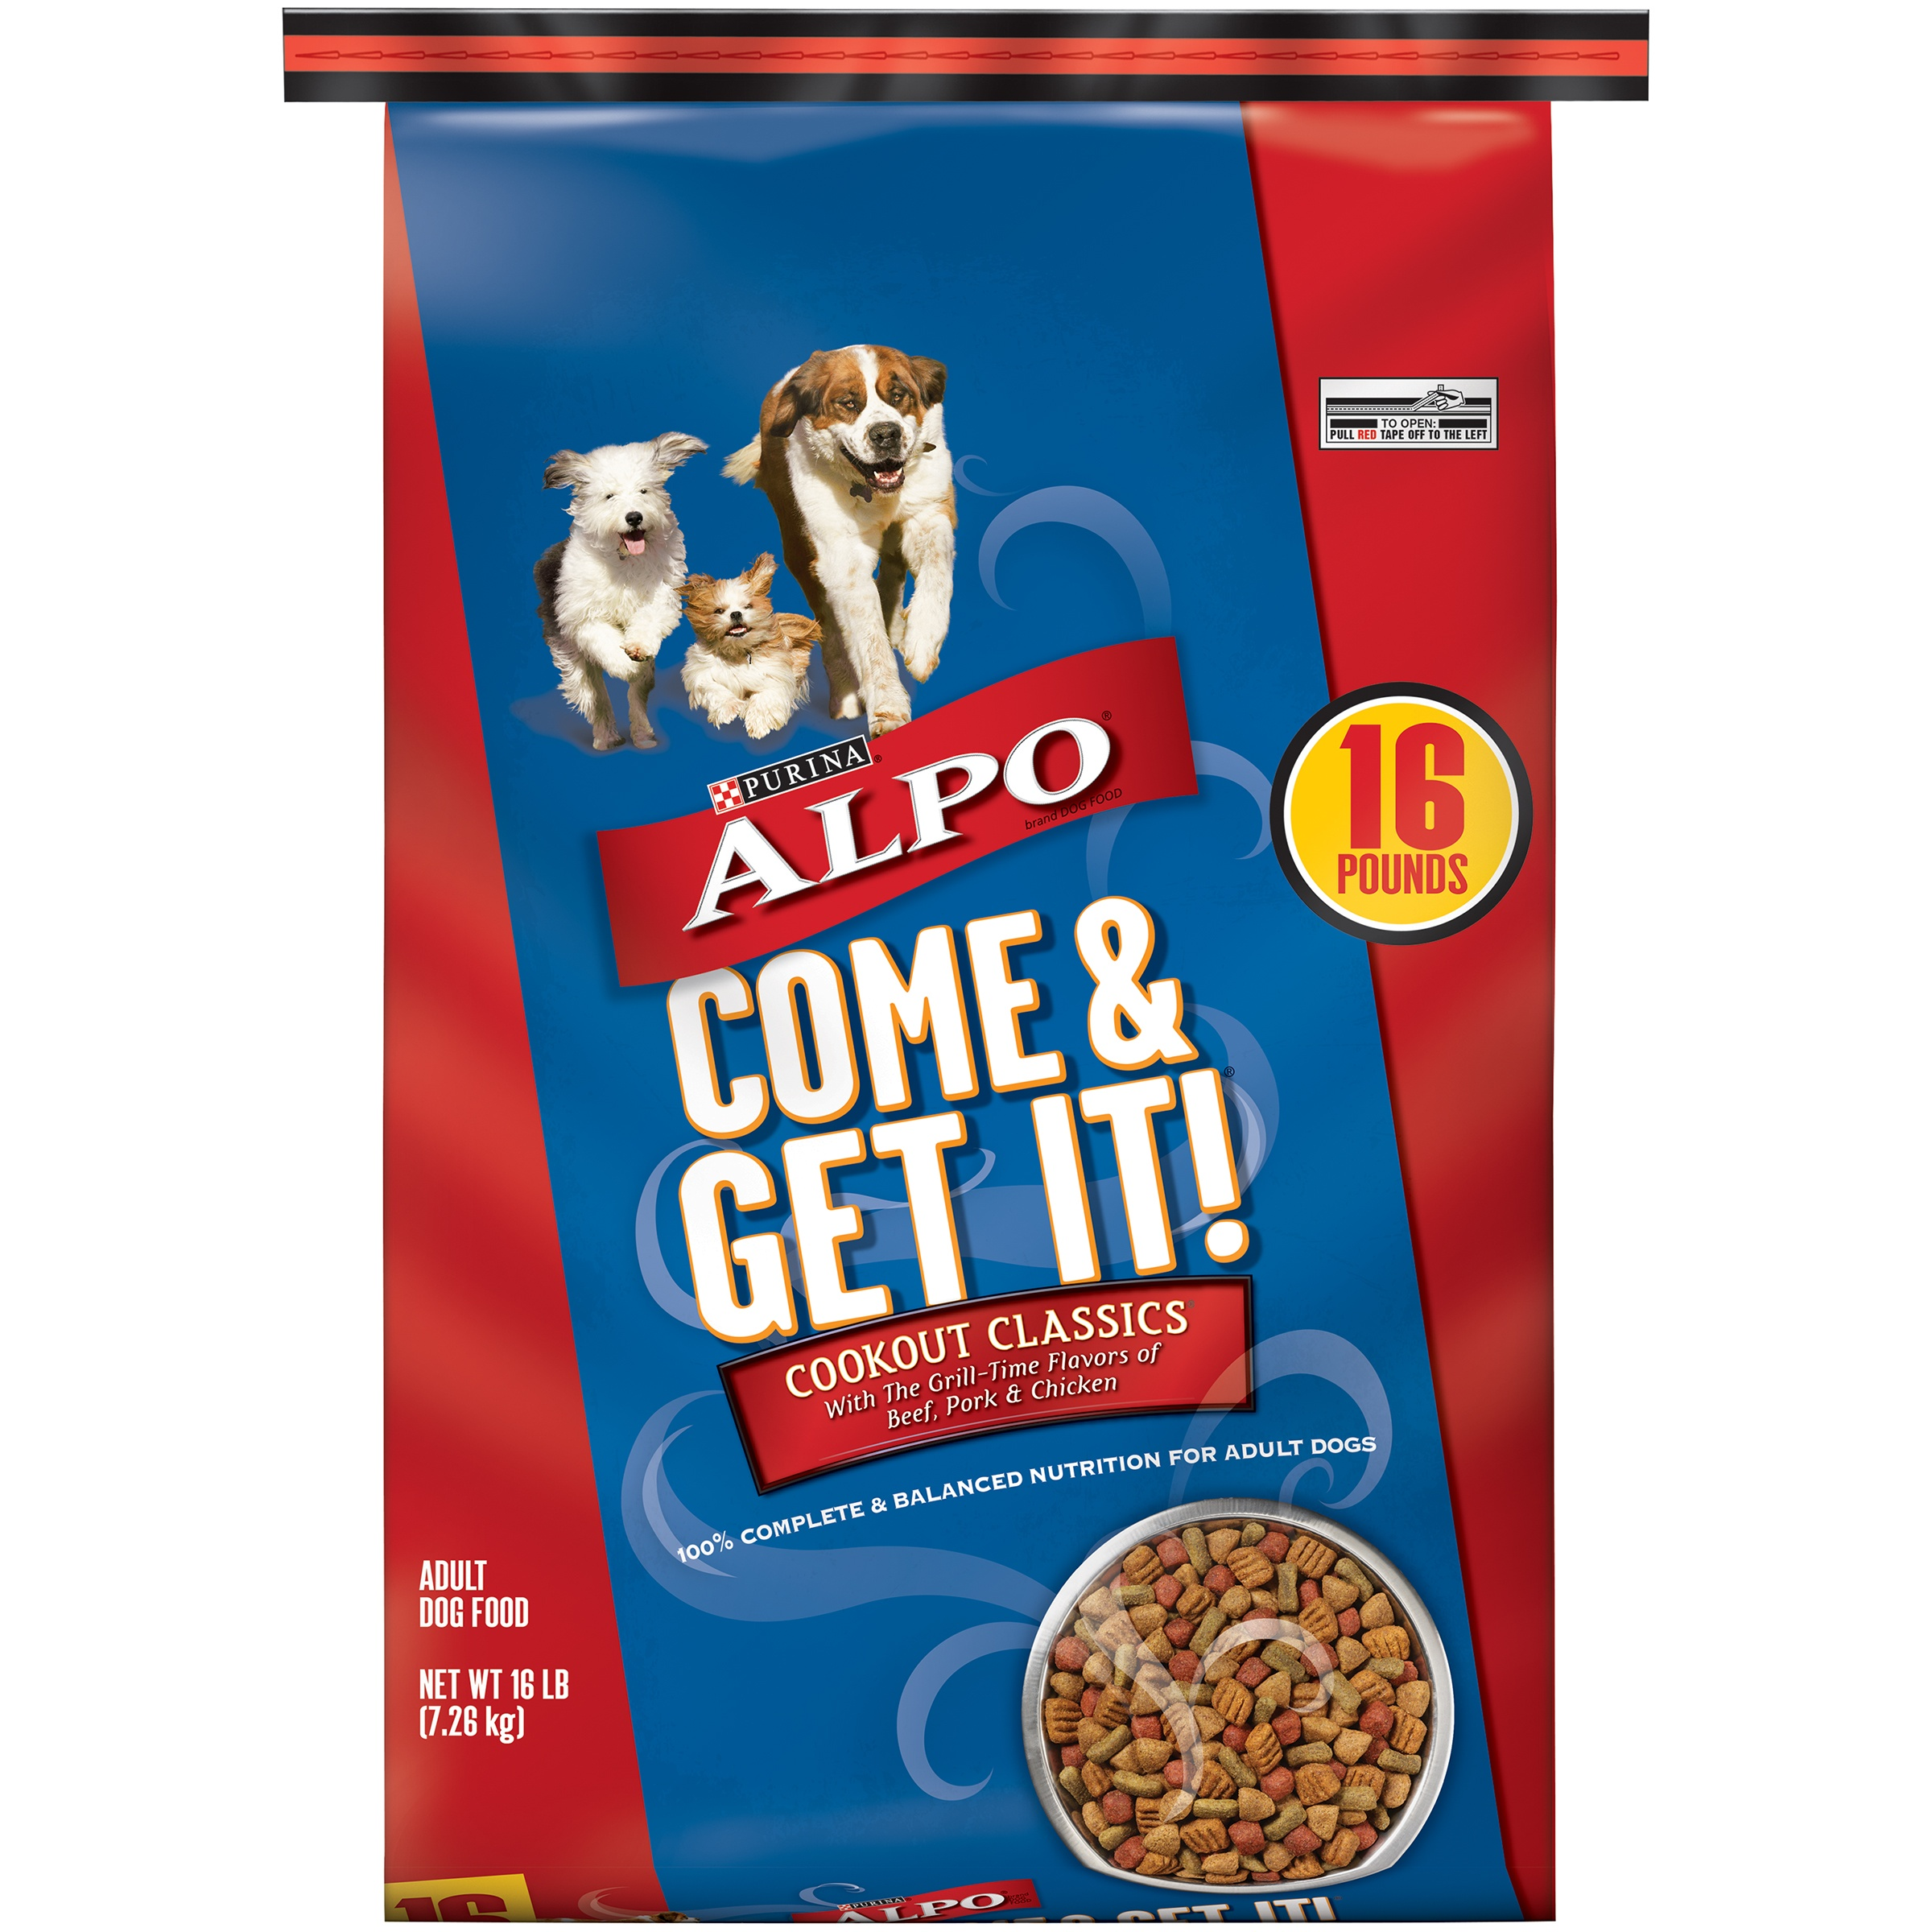 Purina Alpo Come and Get It Come & Get It! Cookout Classics Dry Dog Food, 16 Lb.